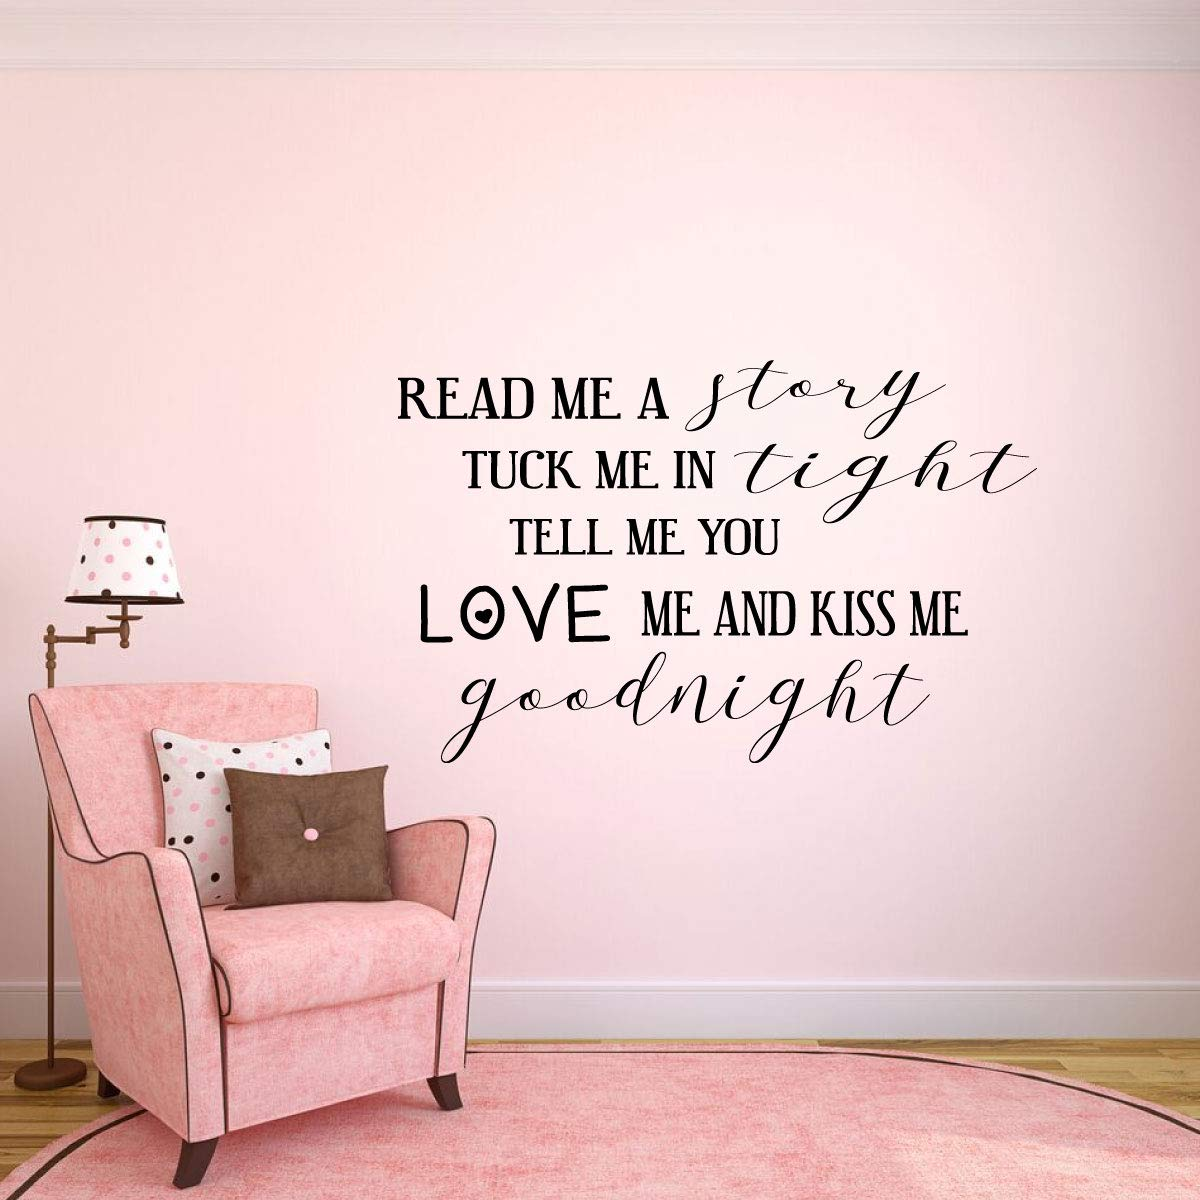 Read Me A Story Bedtime Quote Wall Decal For Kids Bedroom Vinyl Decor Customvinyldecor Com,How To Build A New House In Bloxburg